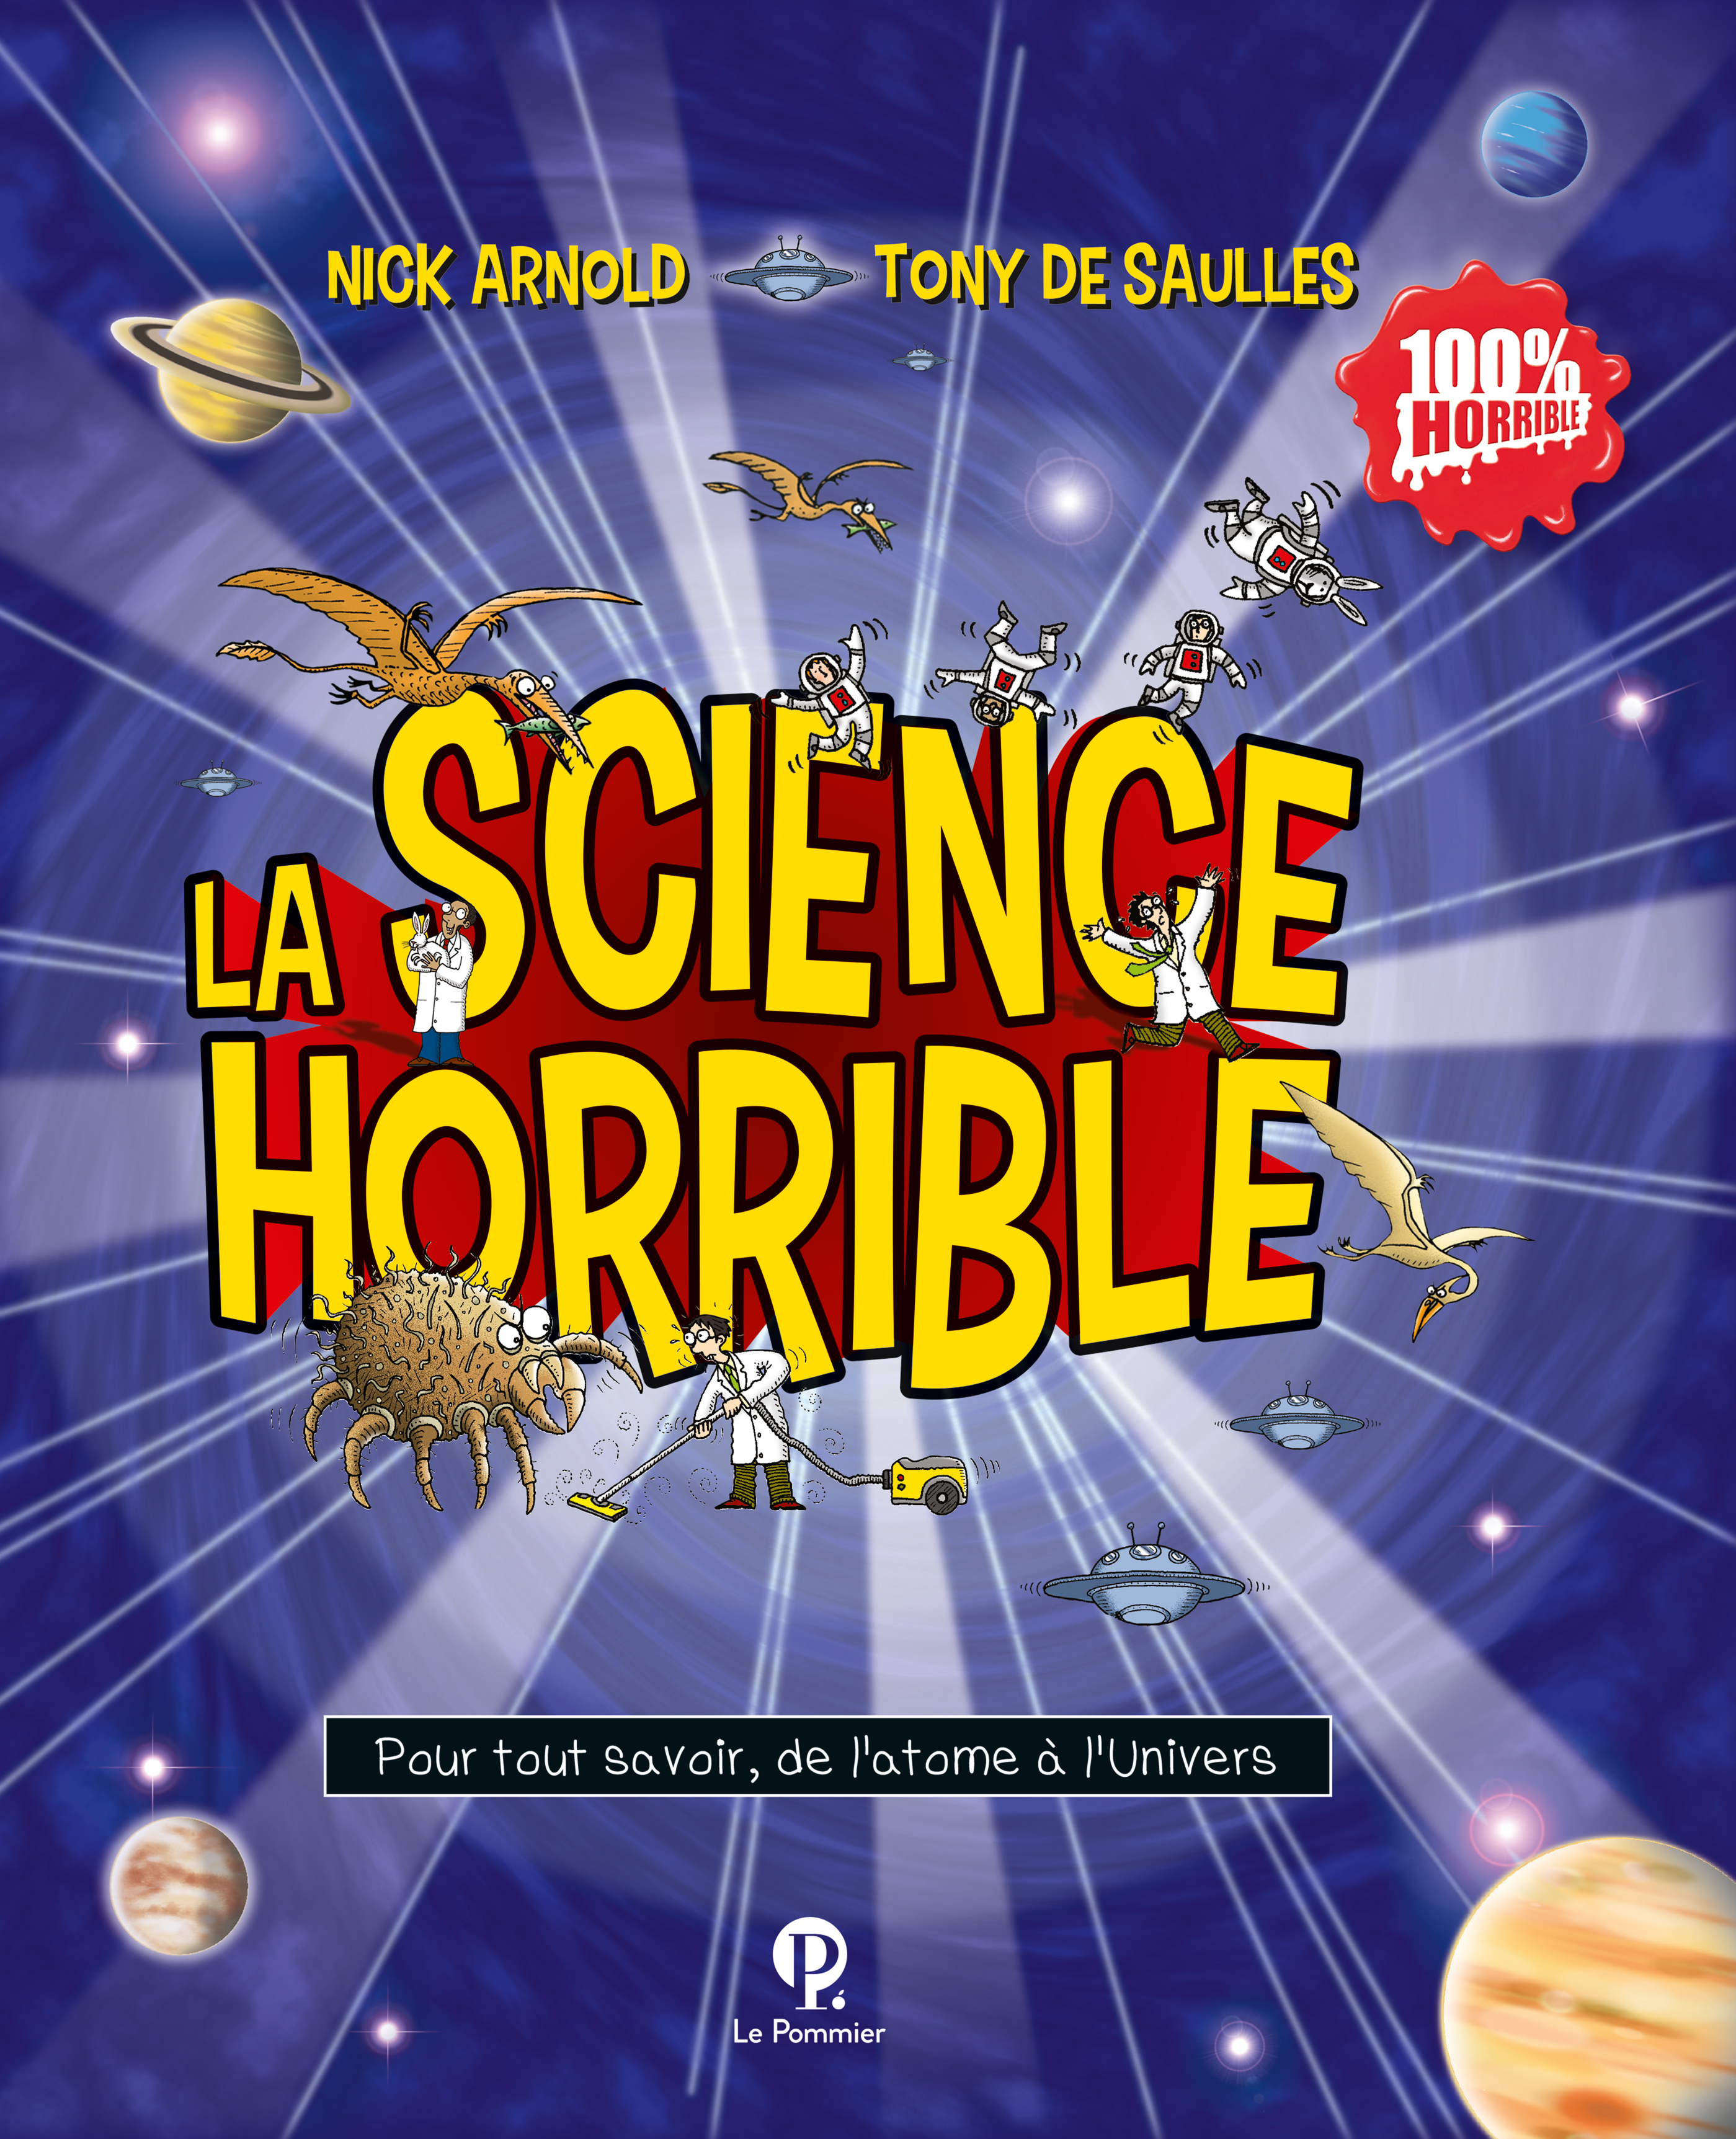 LA SCIENCE HORRIBLE